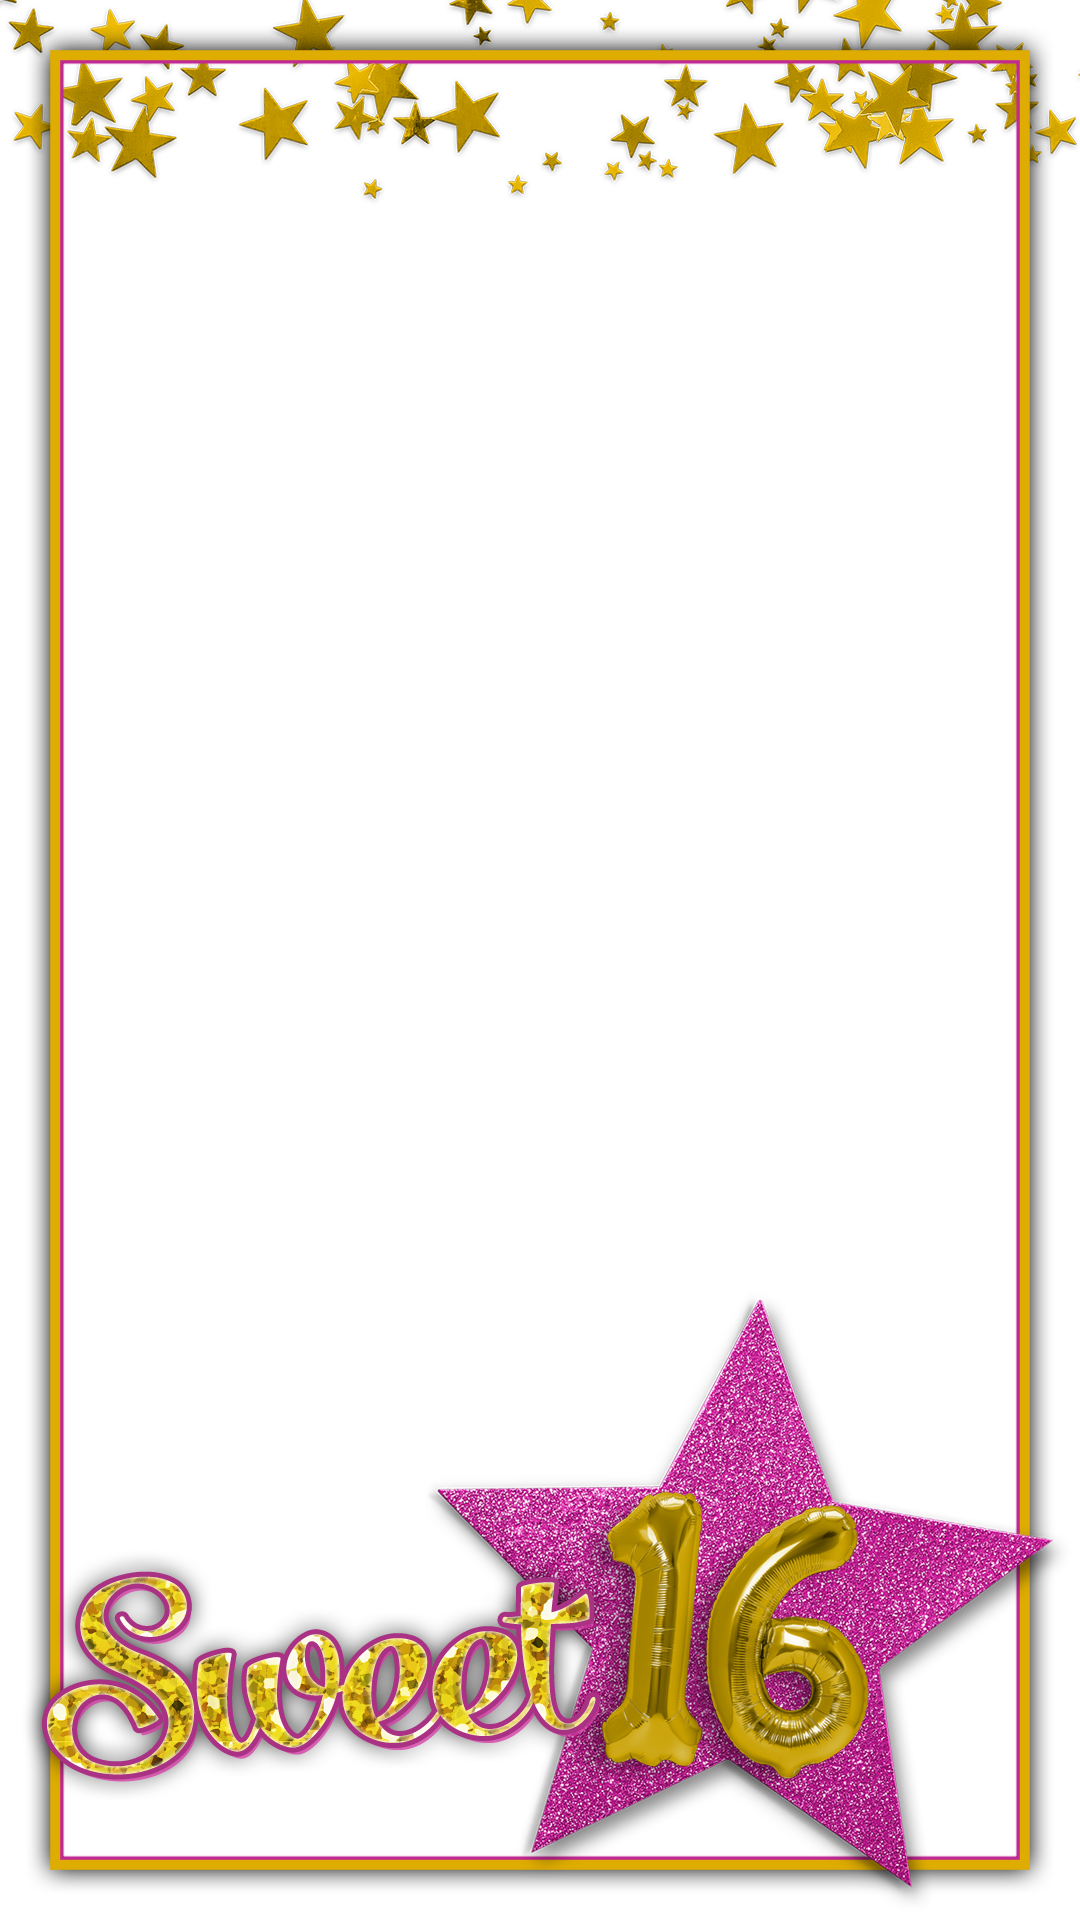 Free sweet 16 snapchat geofilter for Geofilter free